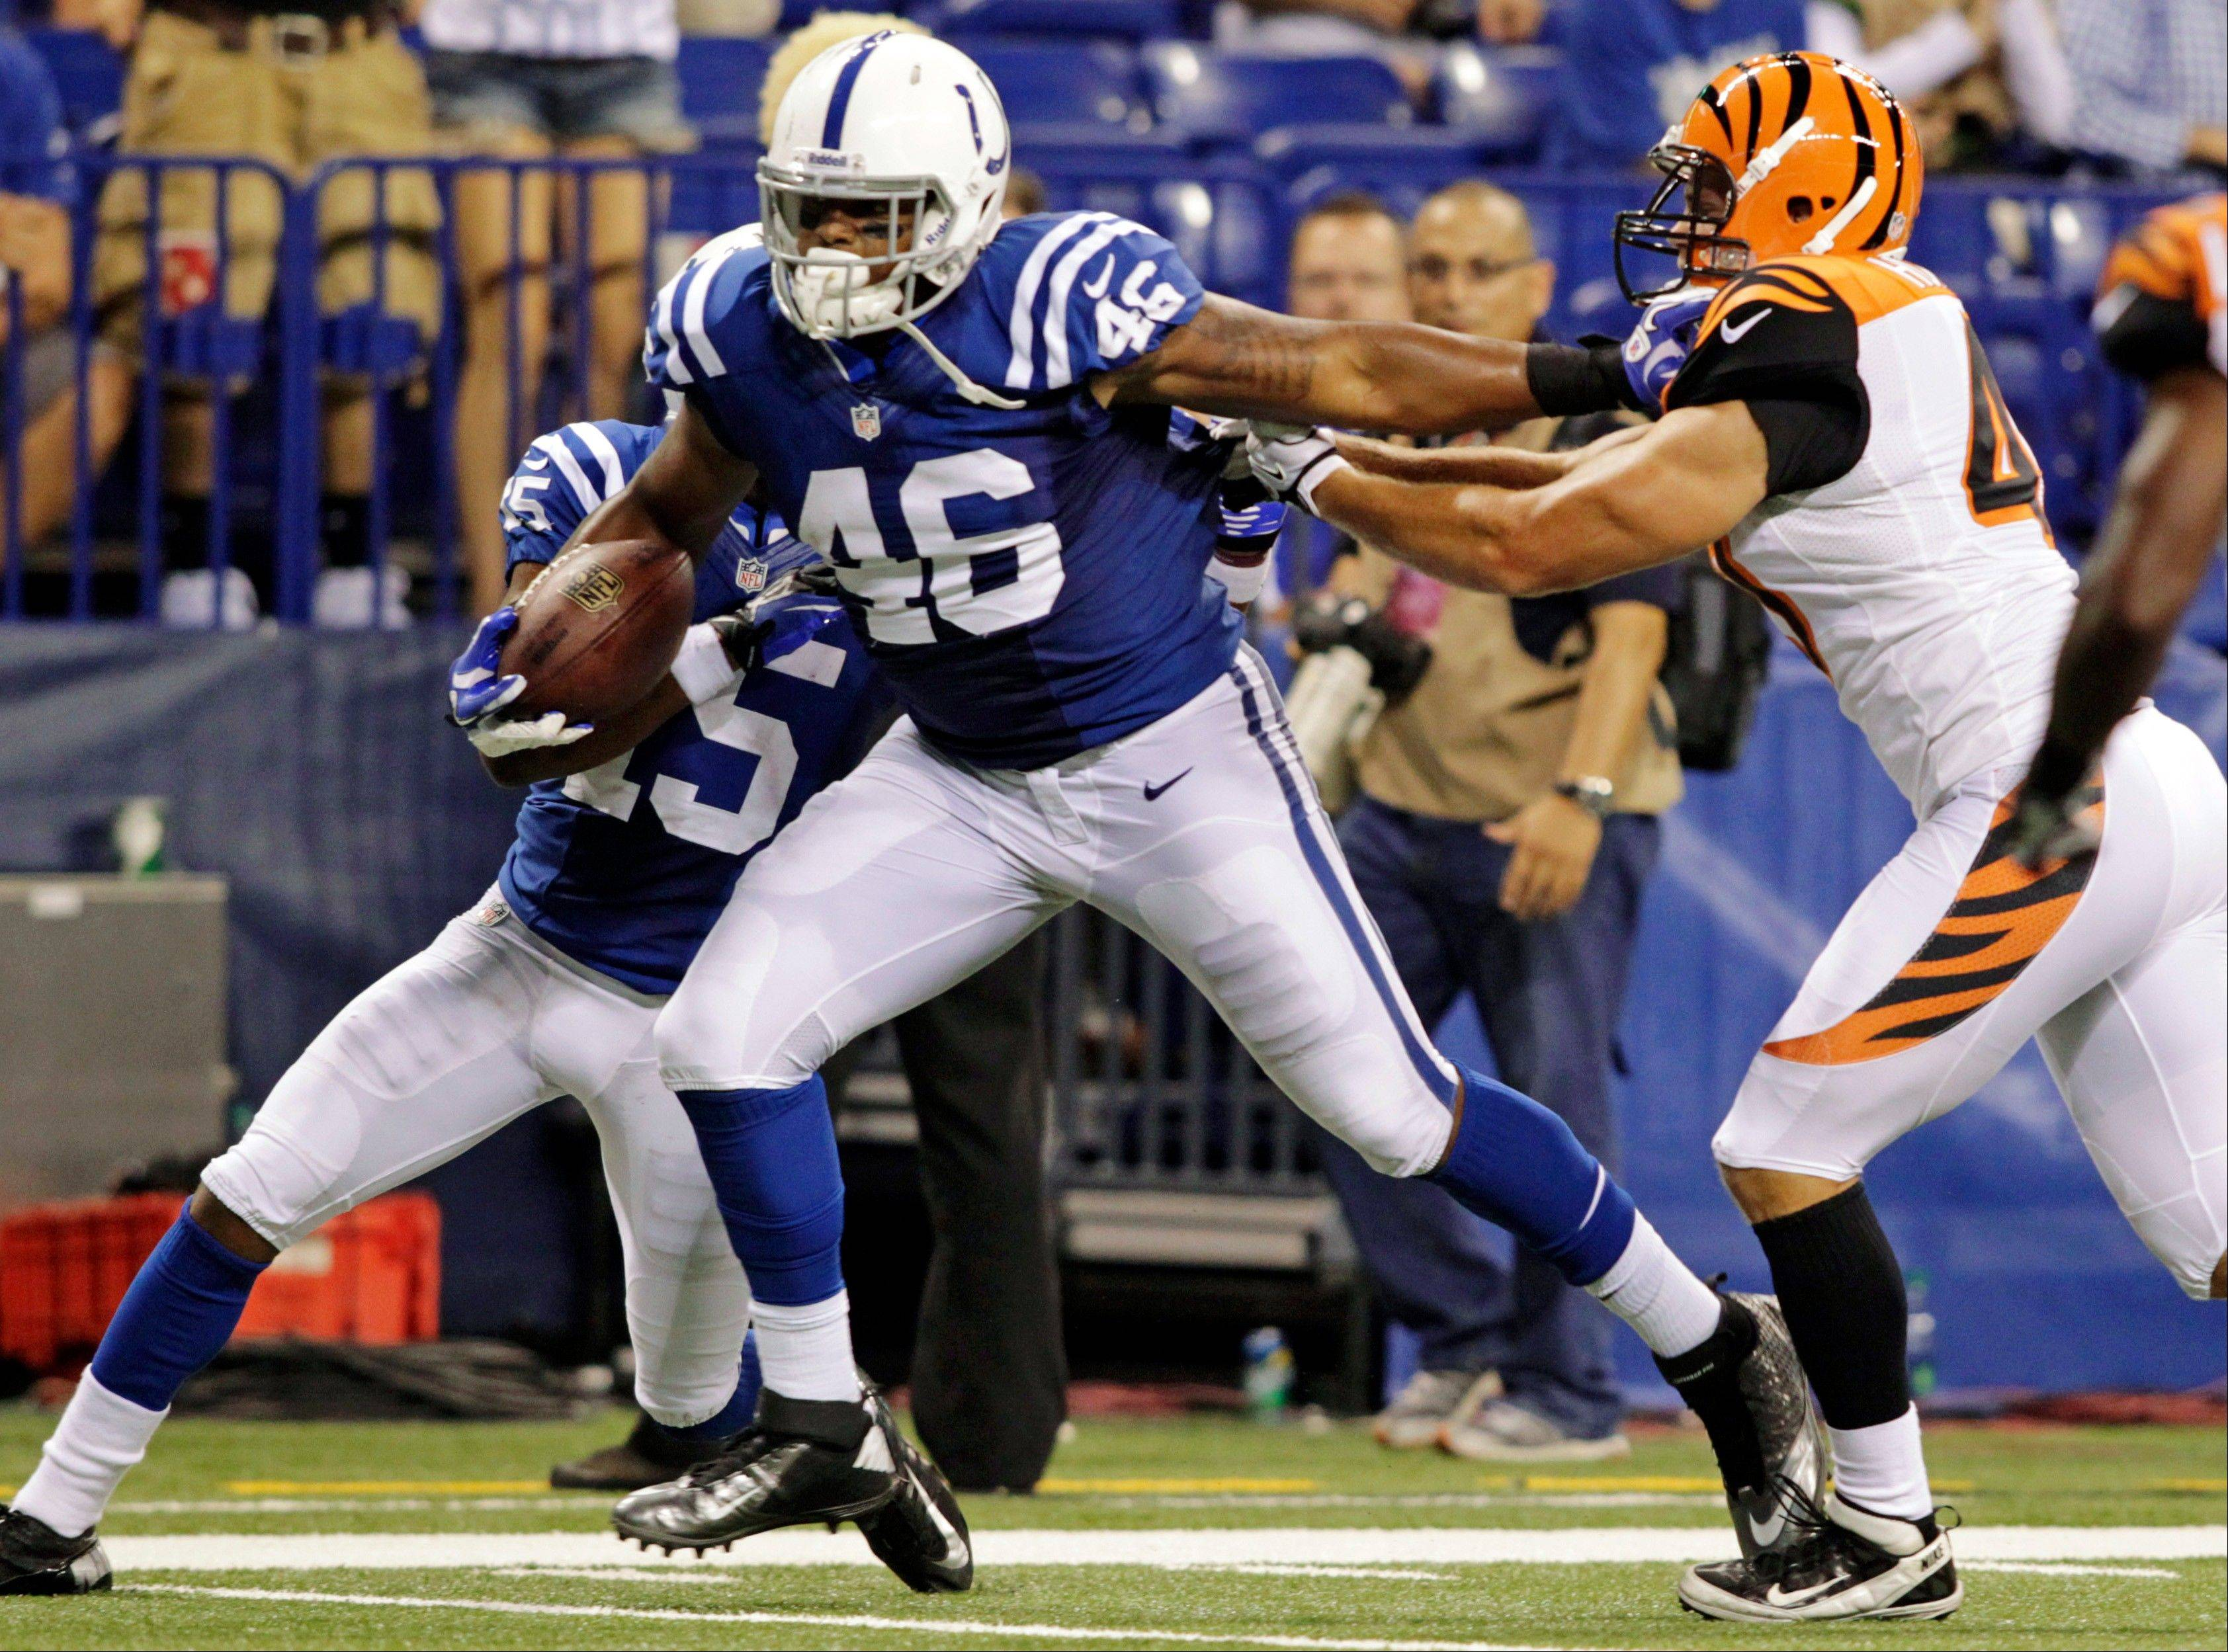 Colts tight end Dominique Jones (46) breaks away from Cincinnati Bengals defensive back T.J. Heath on his way to a touchdown in the second half of a preseason game Thursday in Indianapolis.